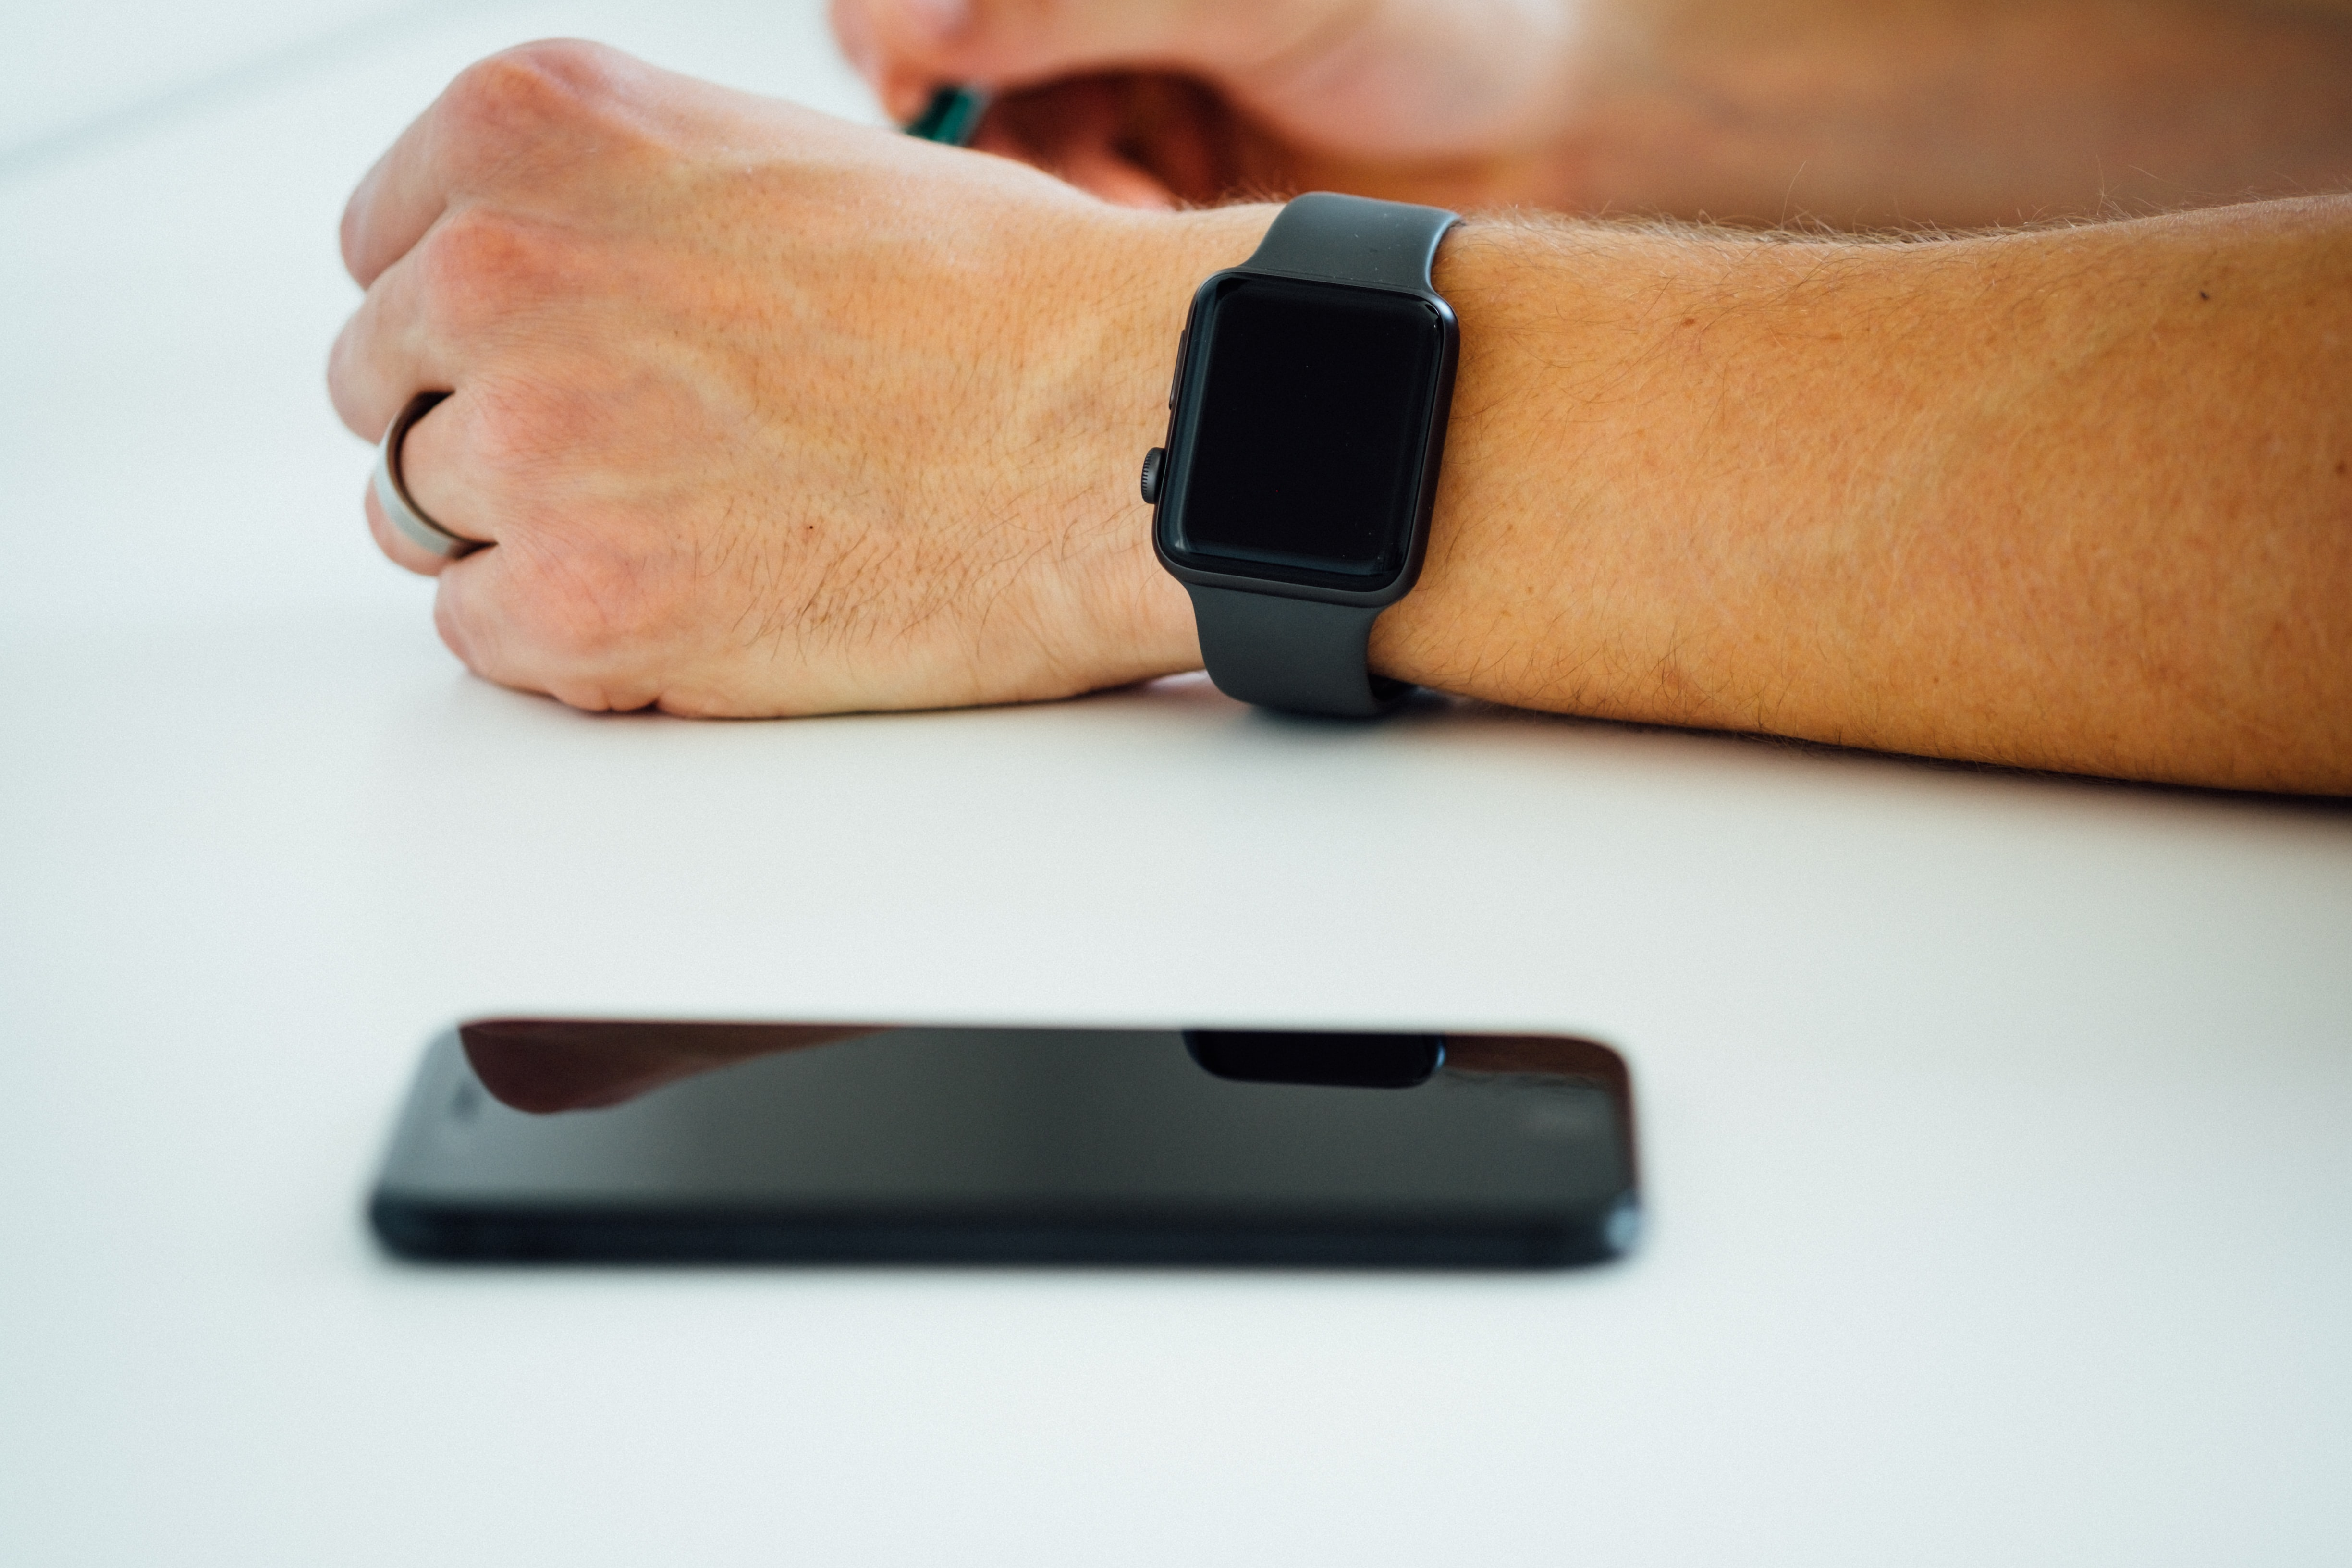 black smartphone near person's hand wearing black smartwatch